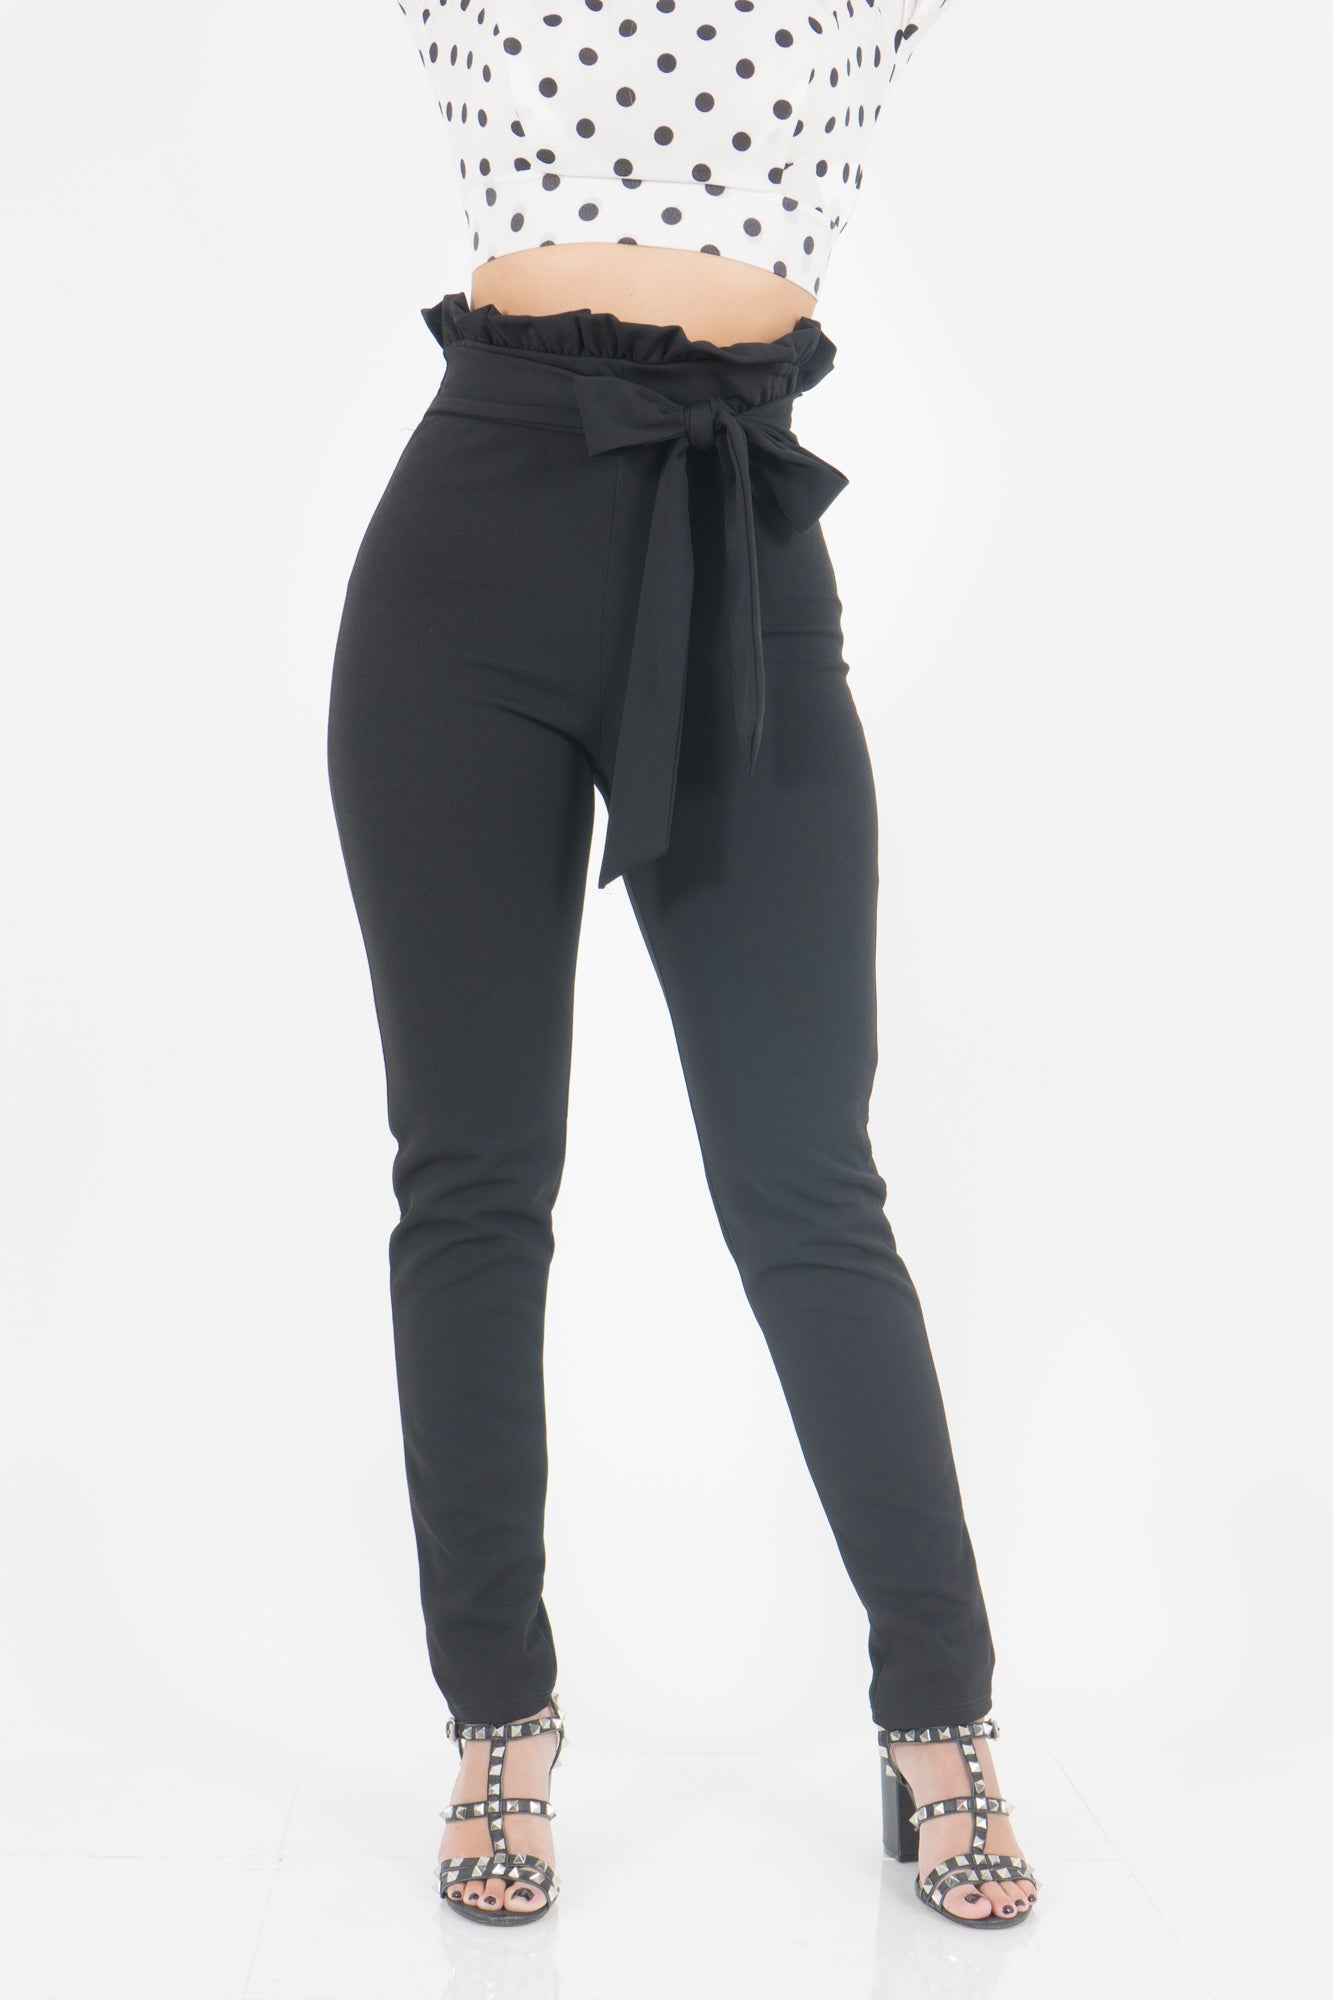 BOW BLACK PANTS